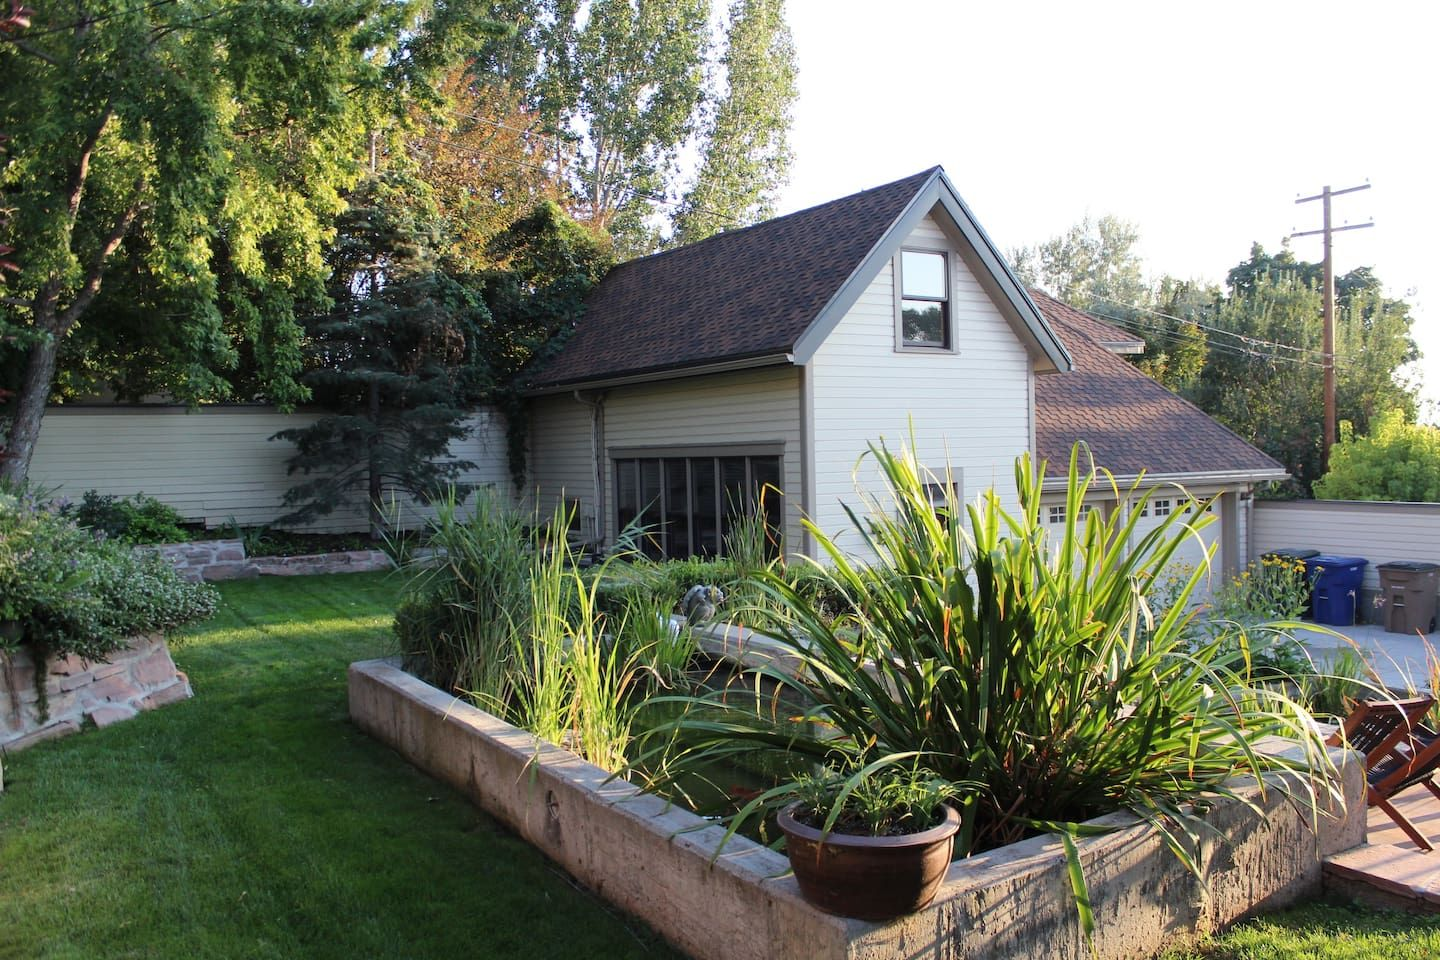 Modern And Cozy Secluded Guesthouse Guesthouse For Rent In Salt Lake City Utah United States Secluded Guest House Salt Lake City